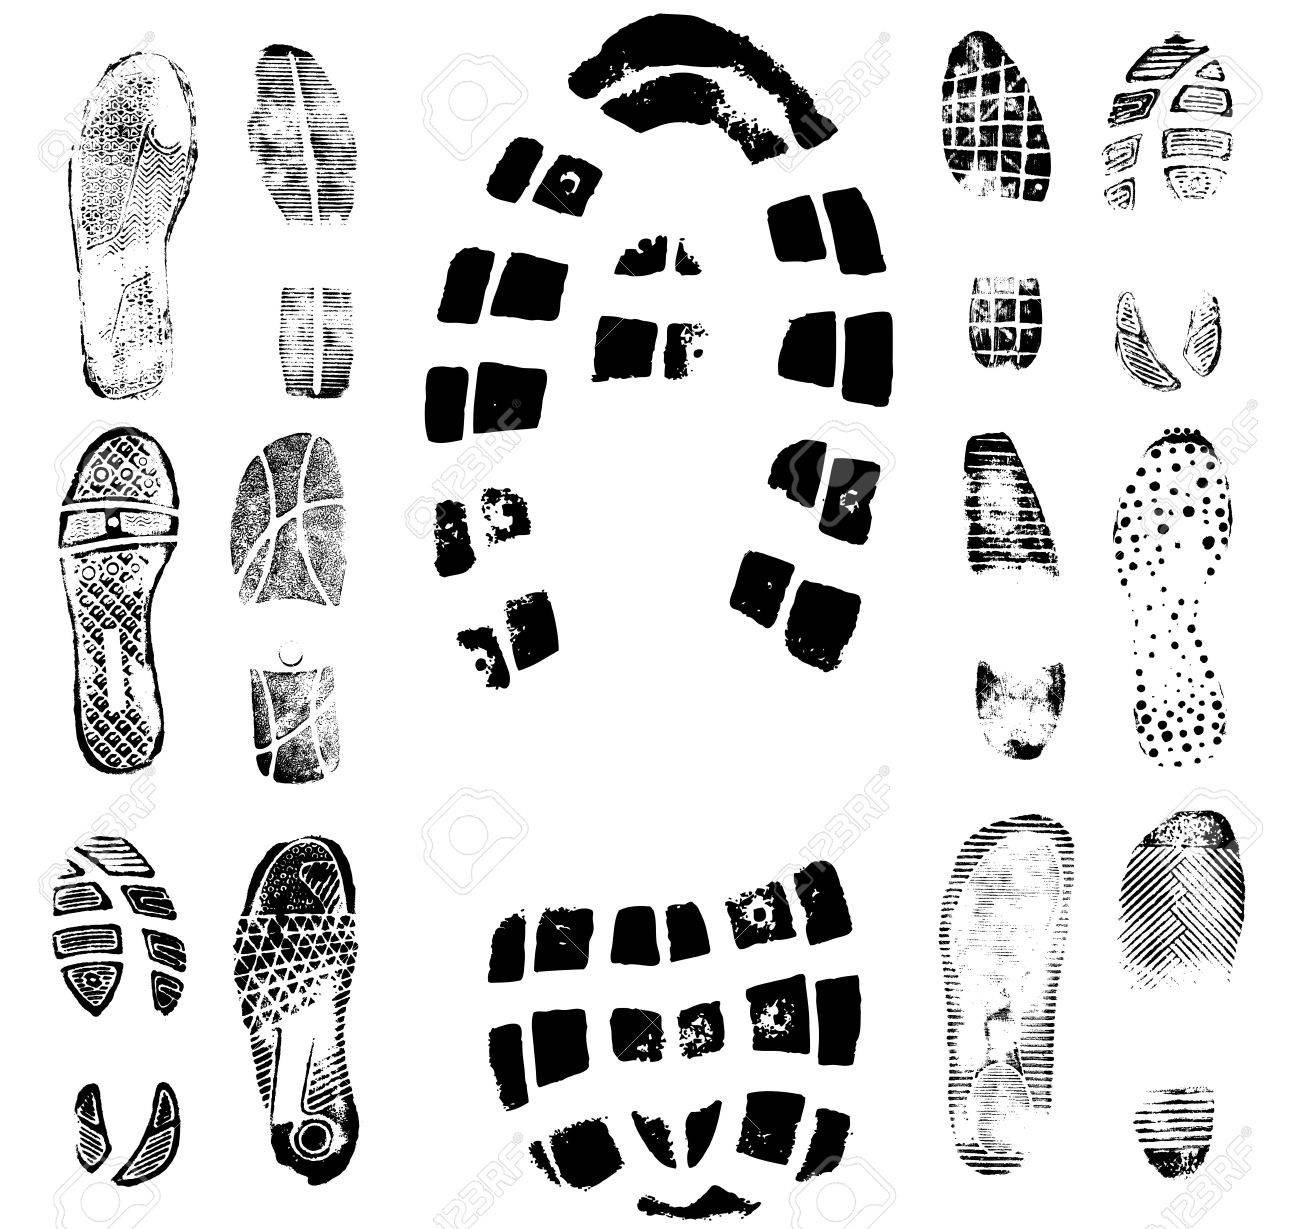 Vector illustration of various footprint shoeprint traces. Collection number 2. - 3797213